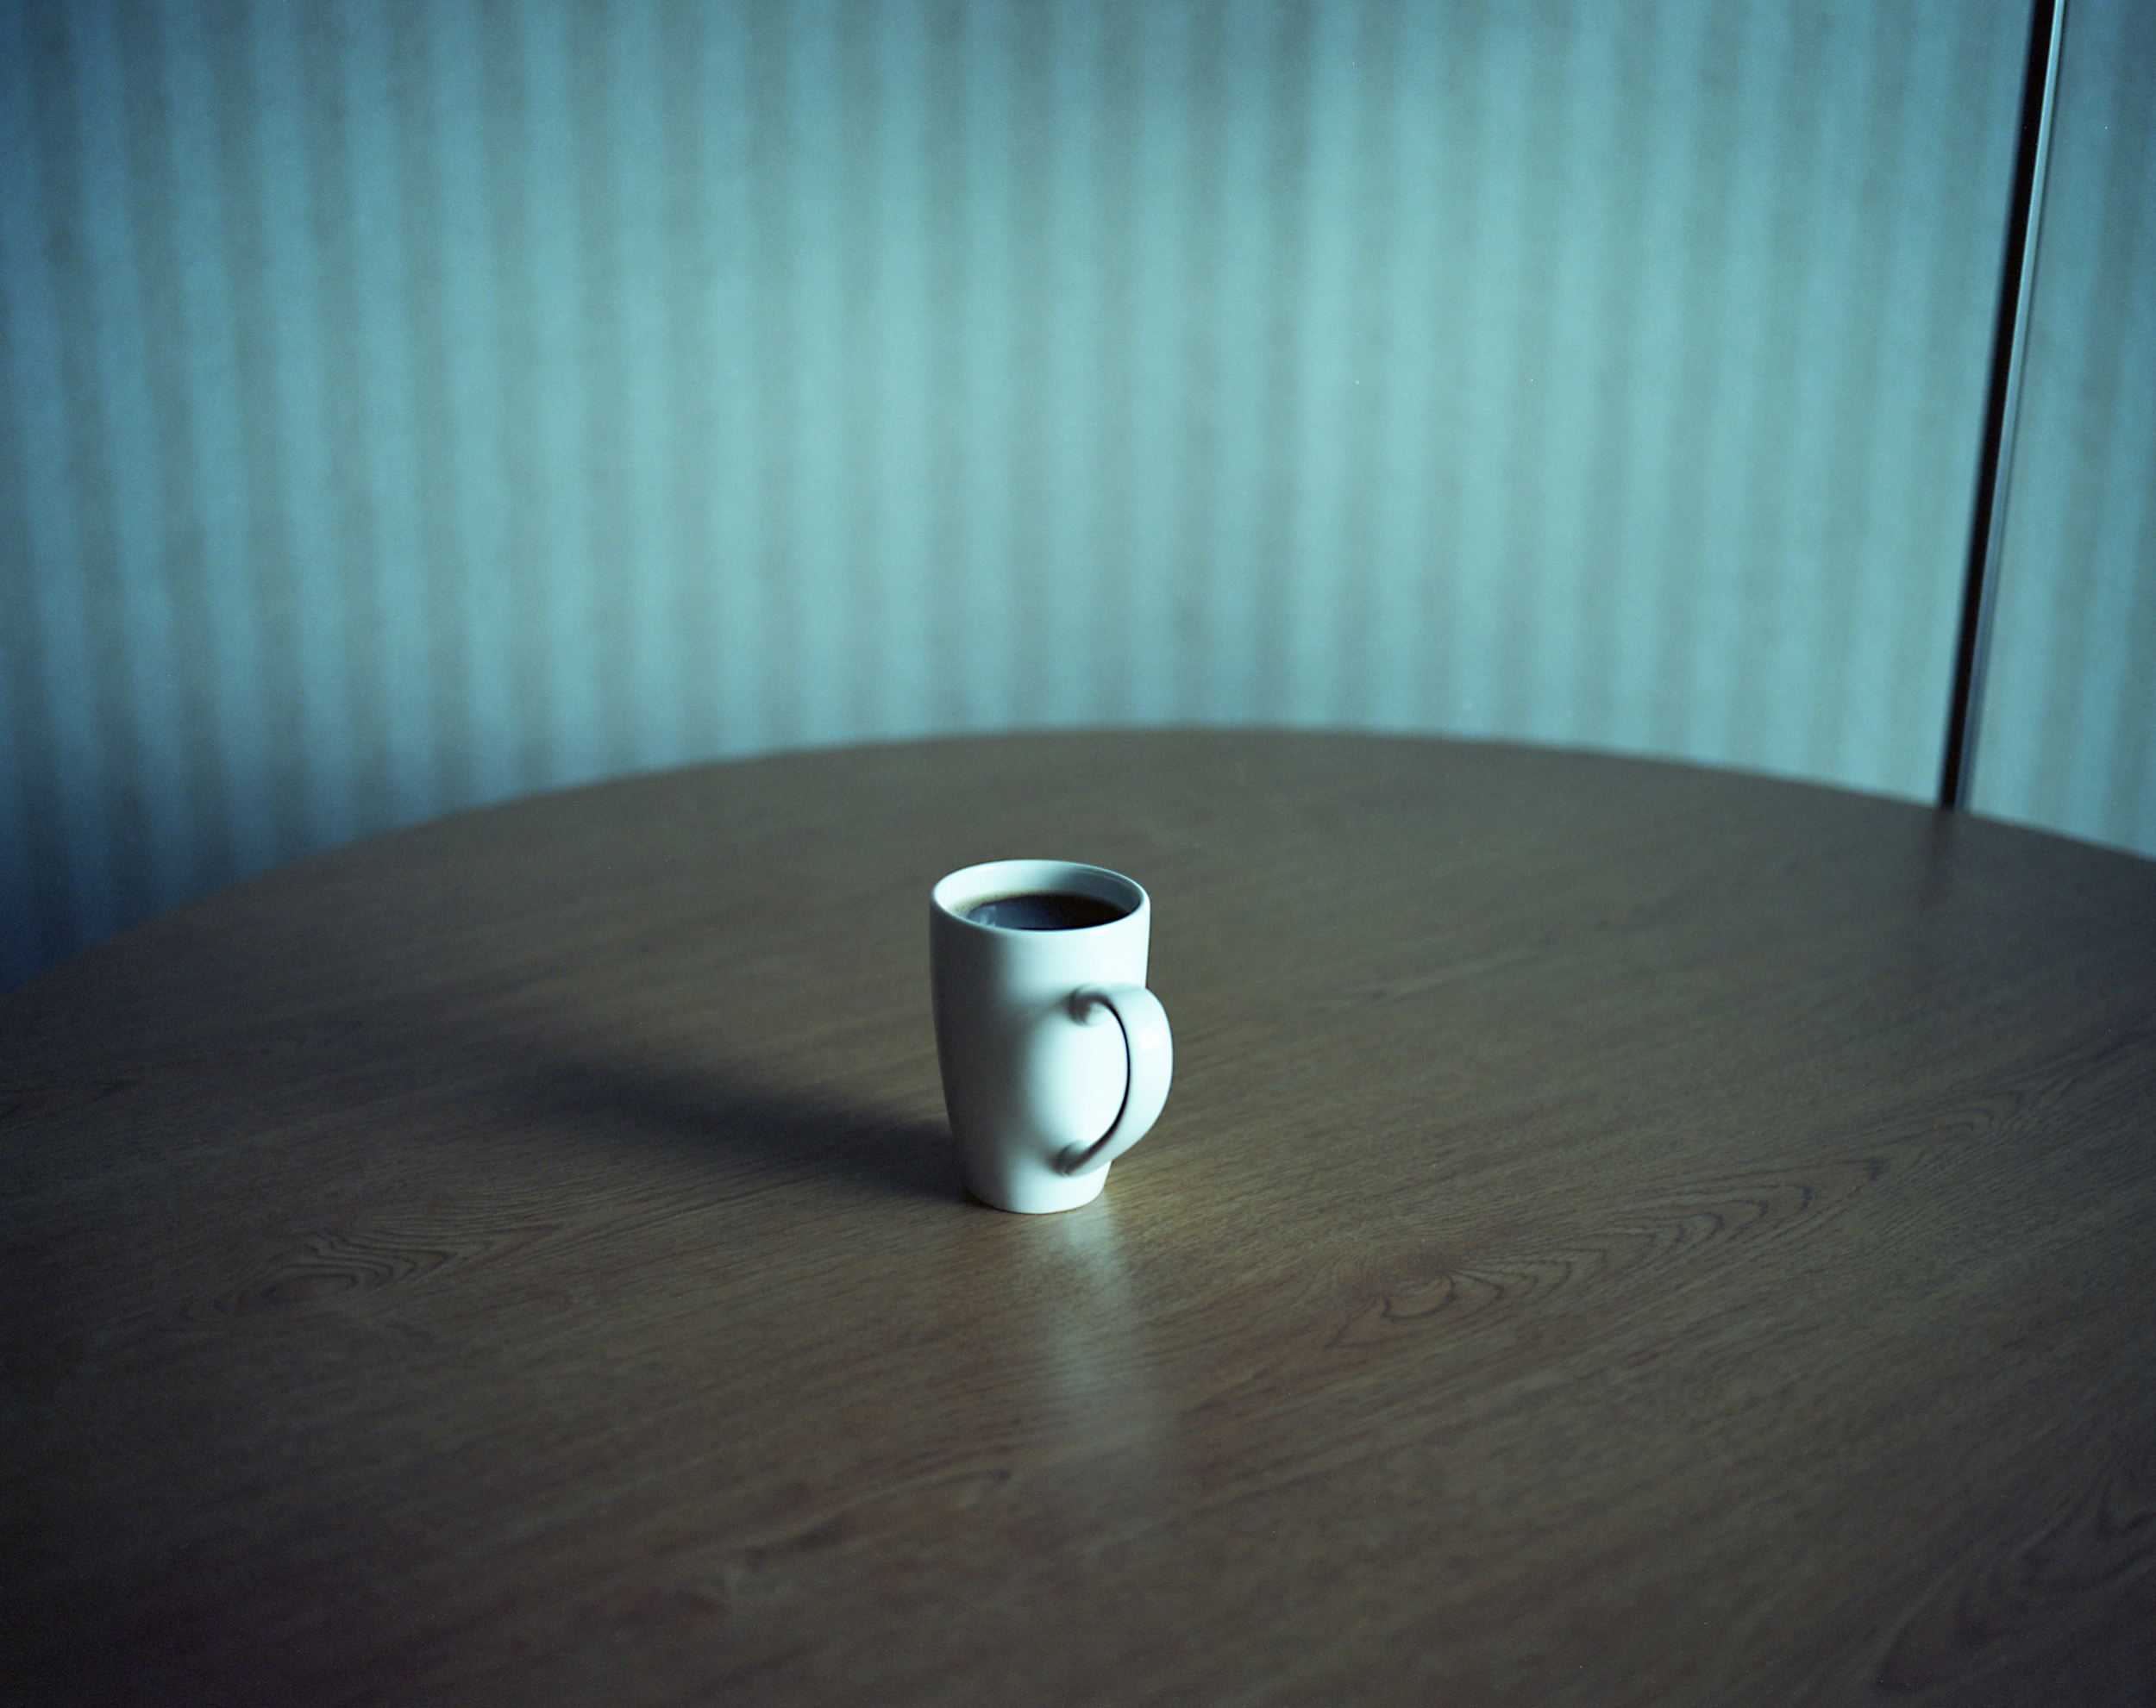 From series 'Familiar Surroundings'